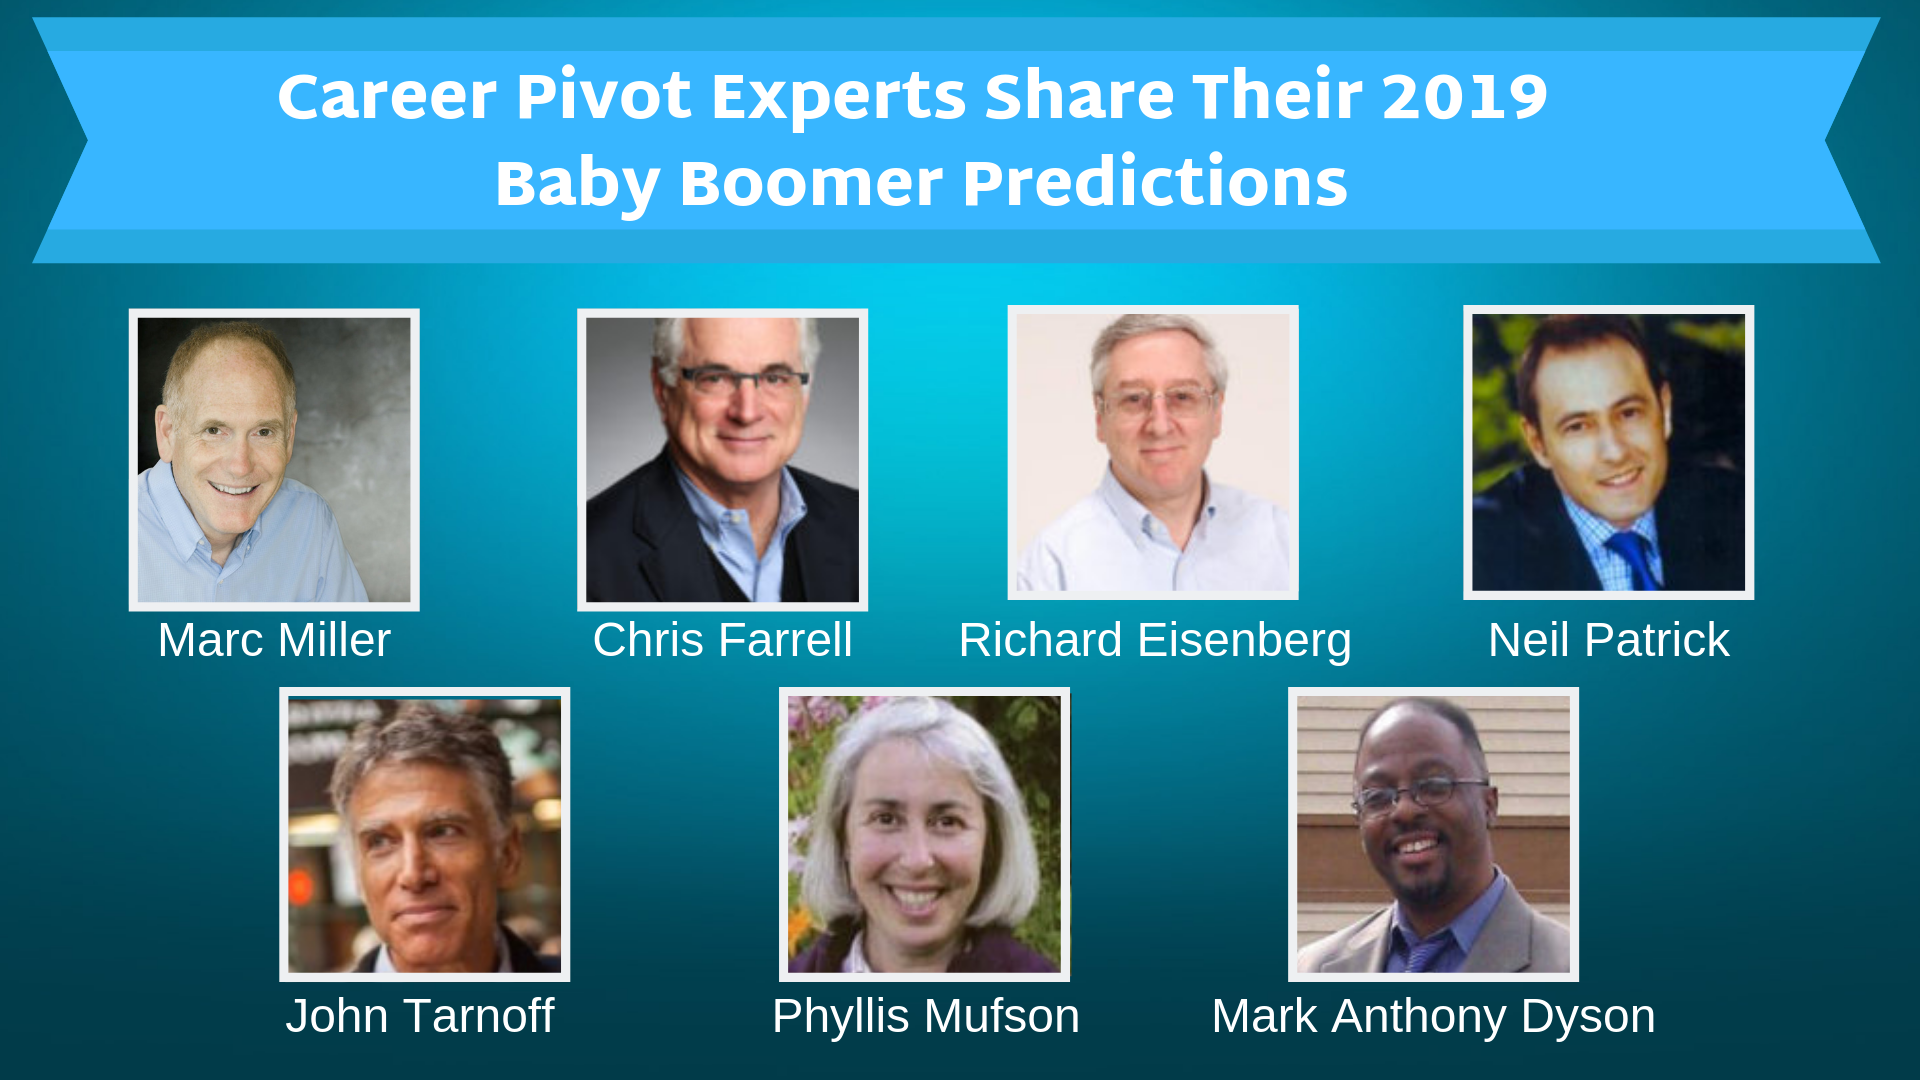 Career Pivot Experts Share Their 2019 Baby Boomer Predictions